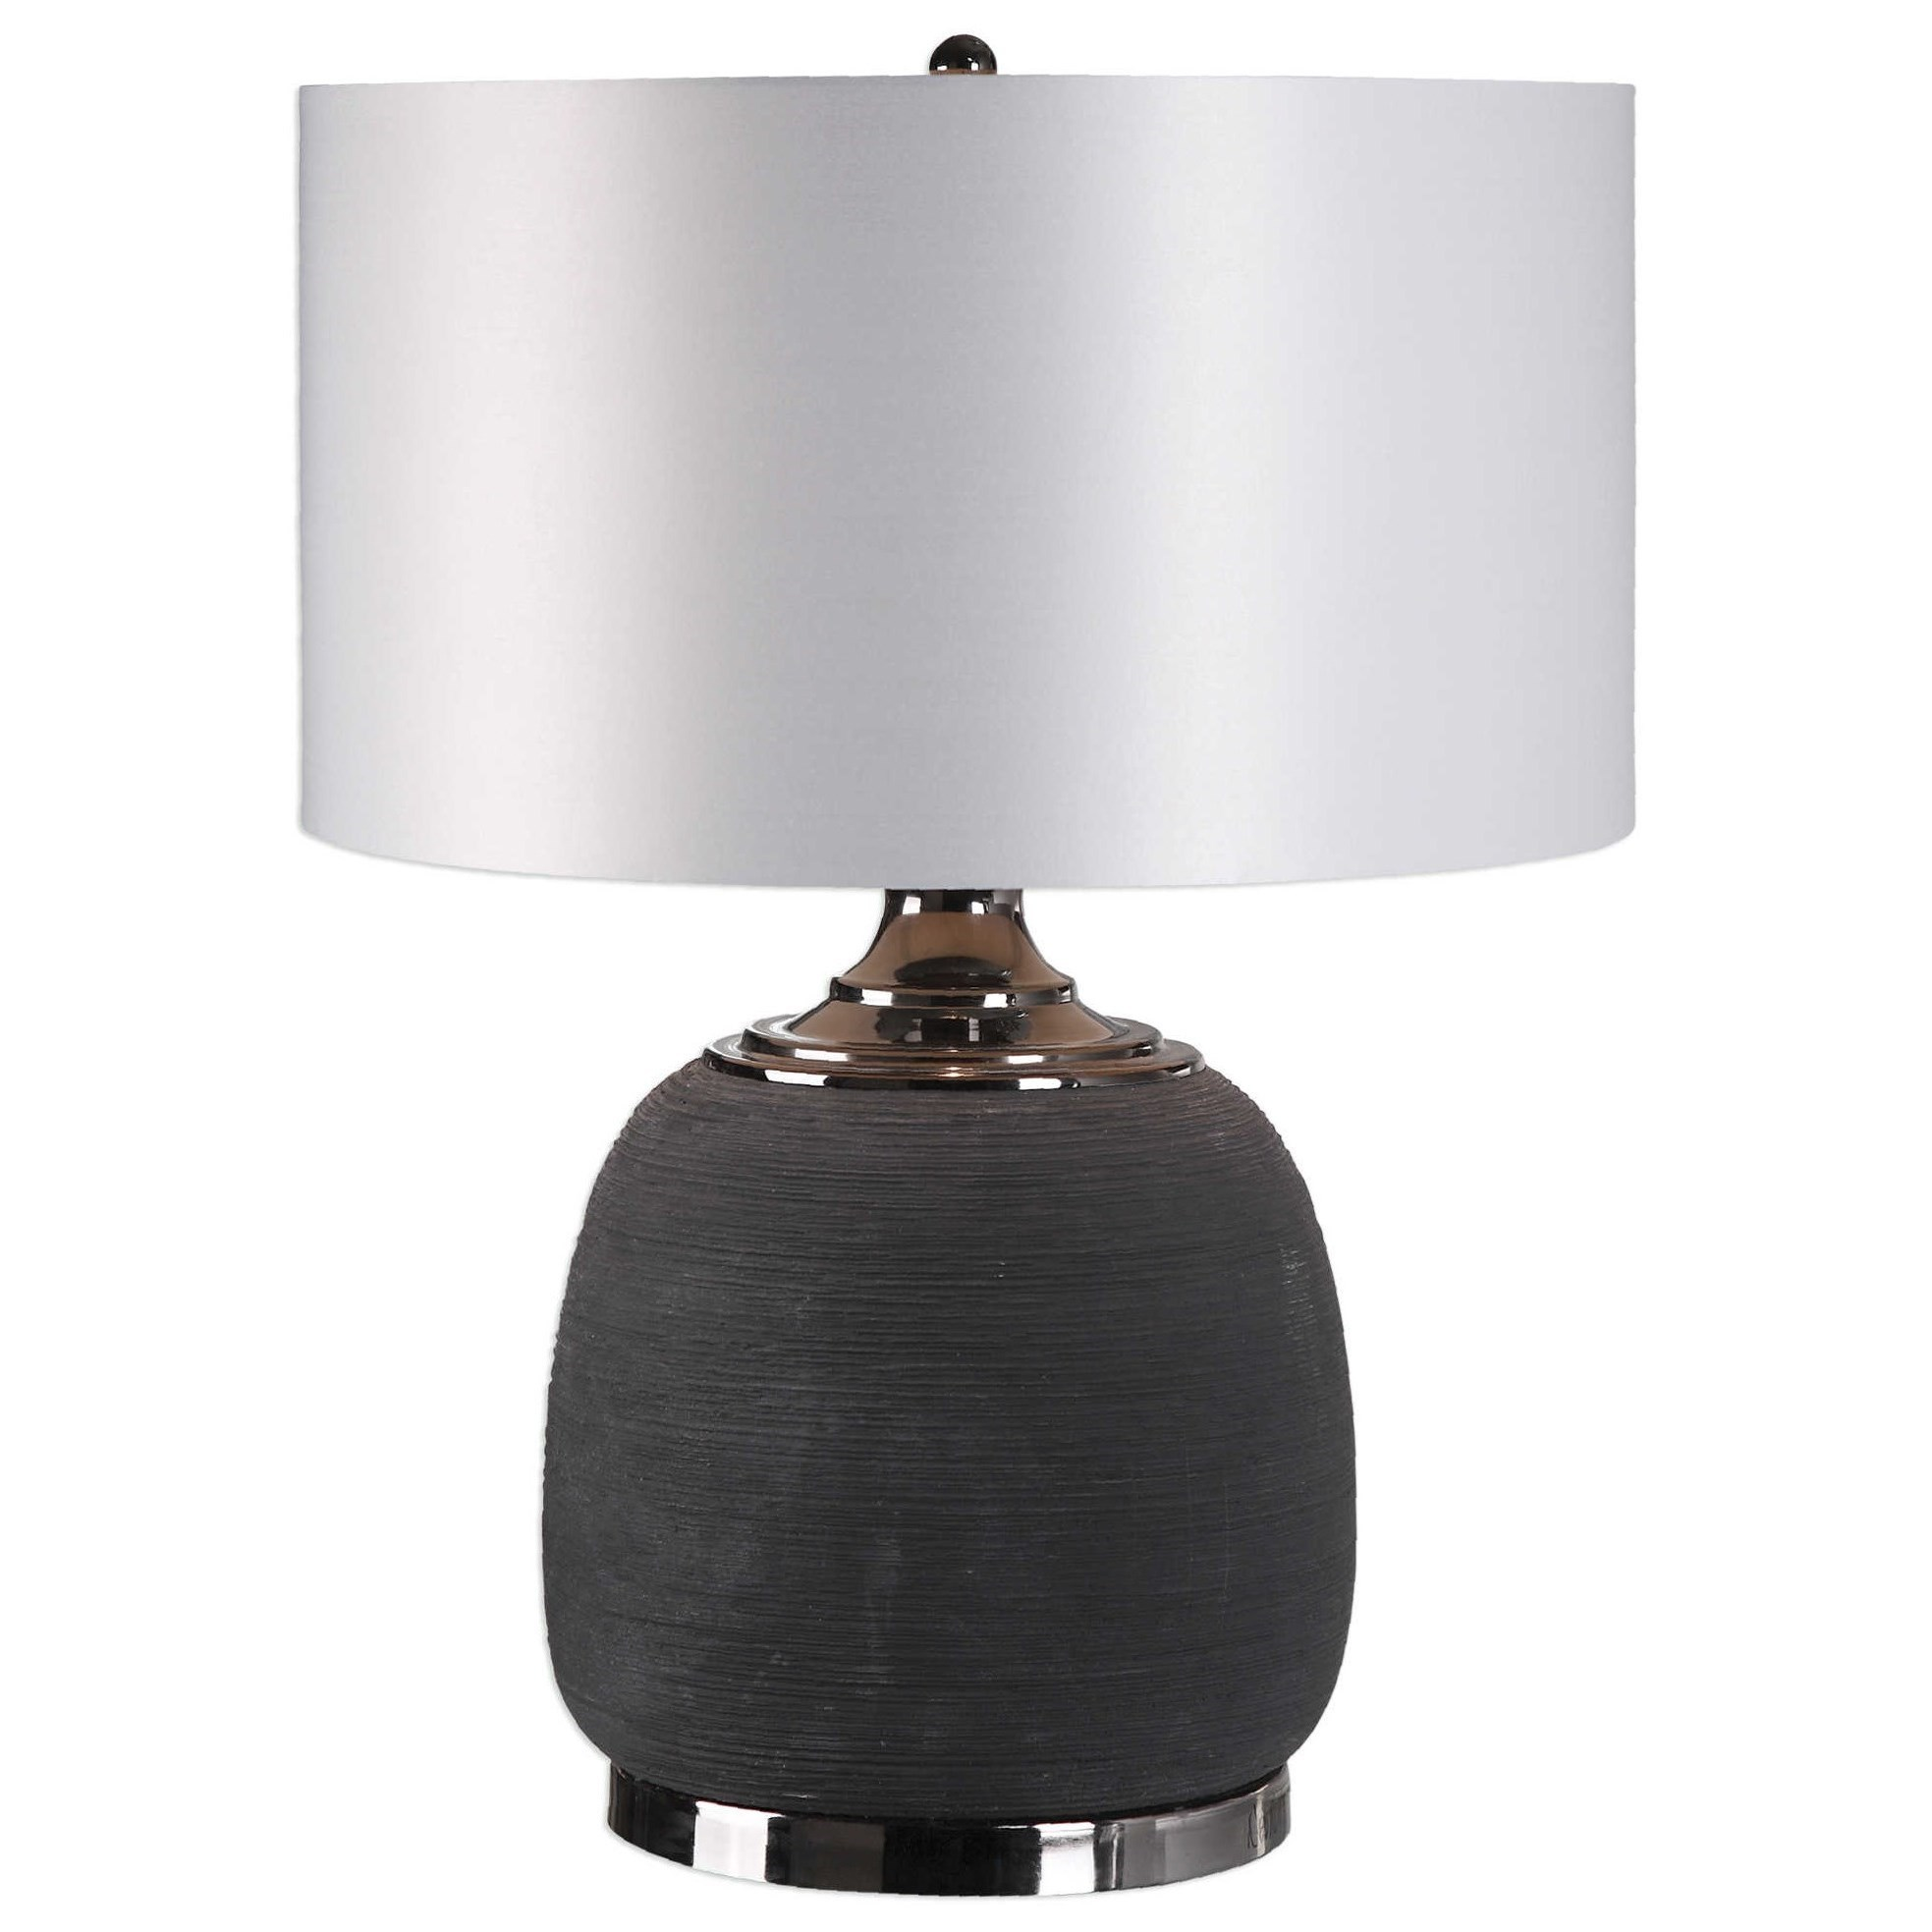 Uttermost LampsCharna Charcoal Ceramic Table Lamp ...